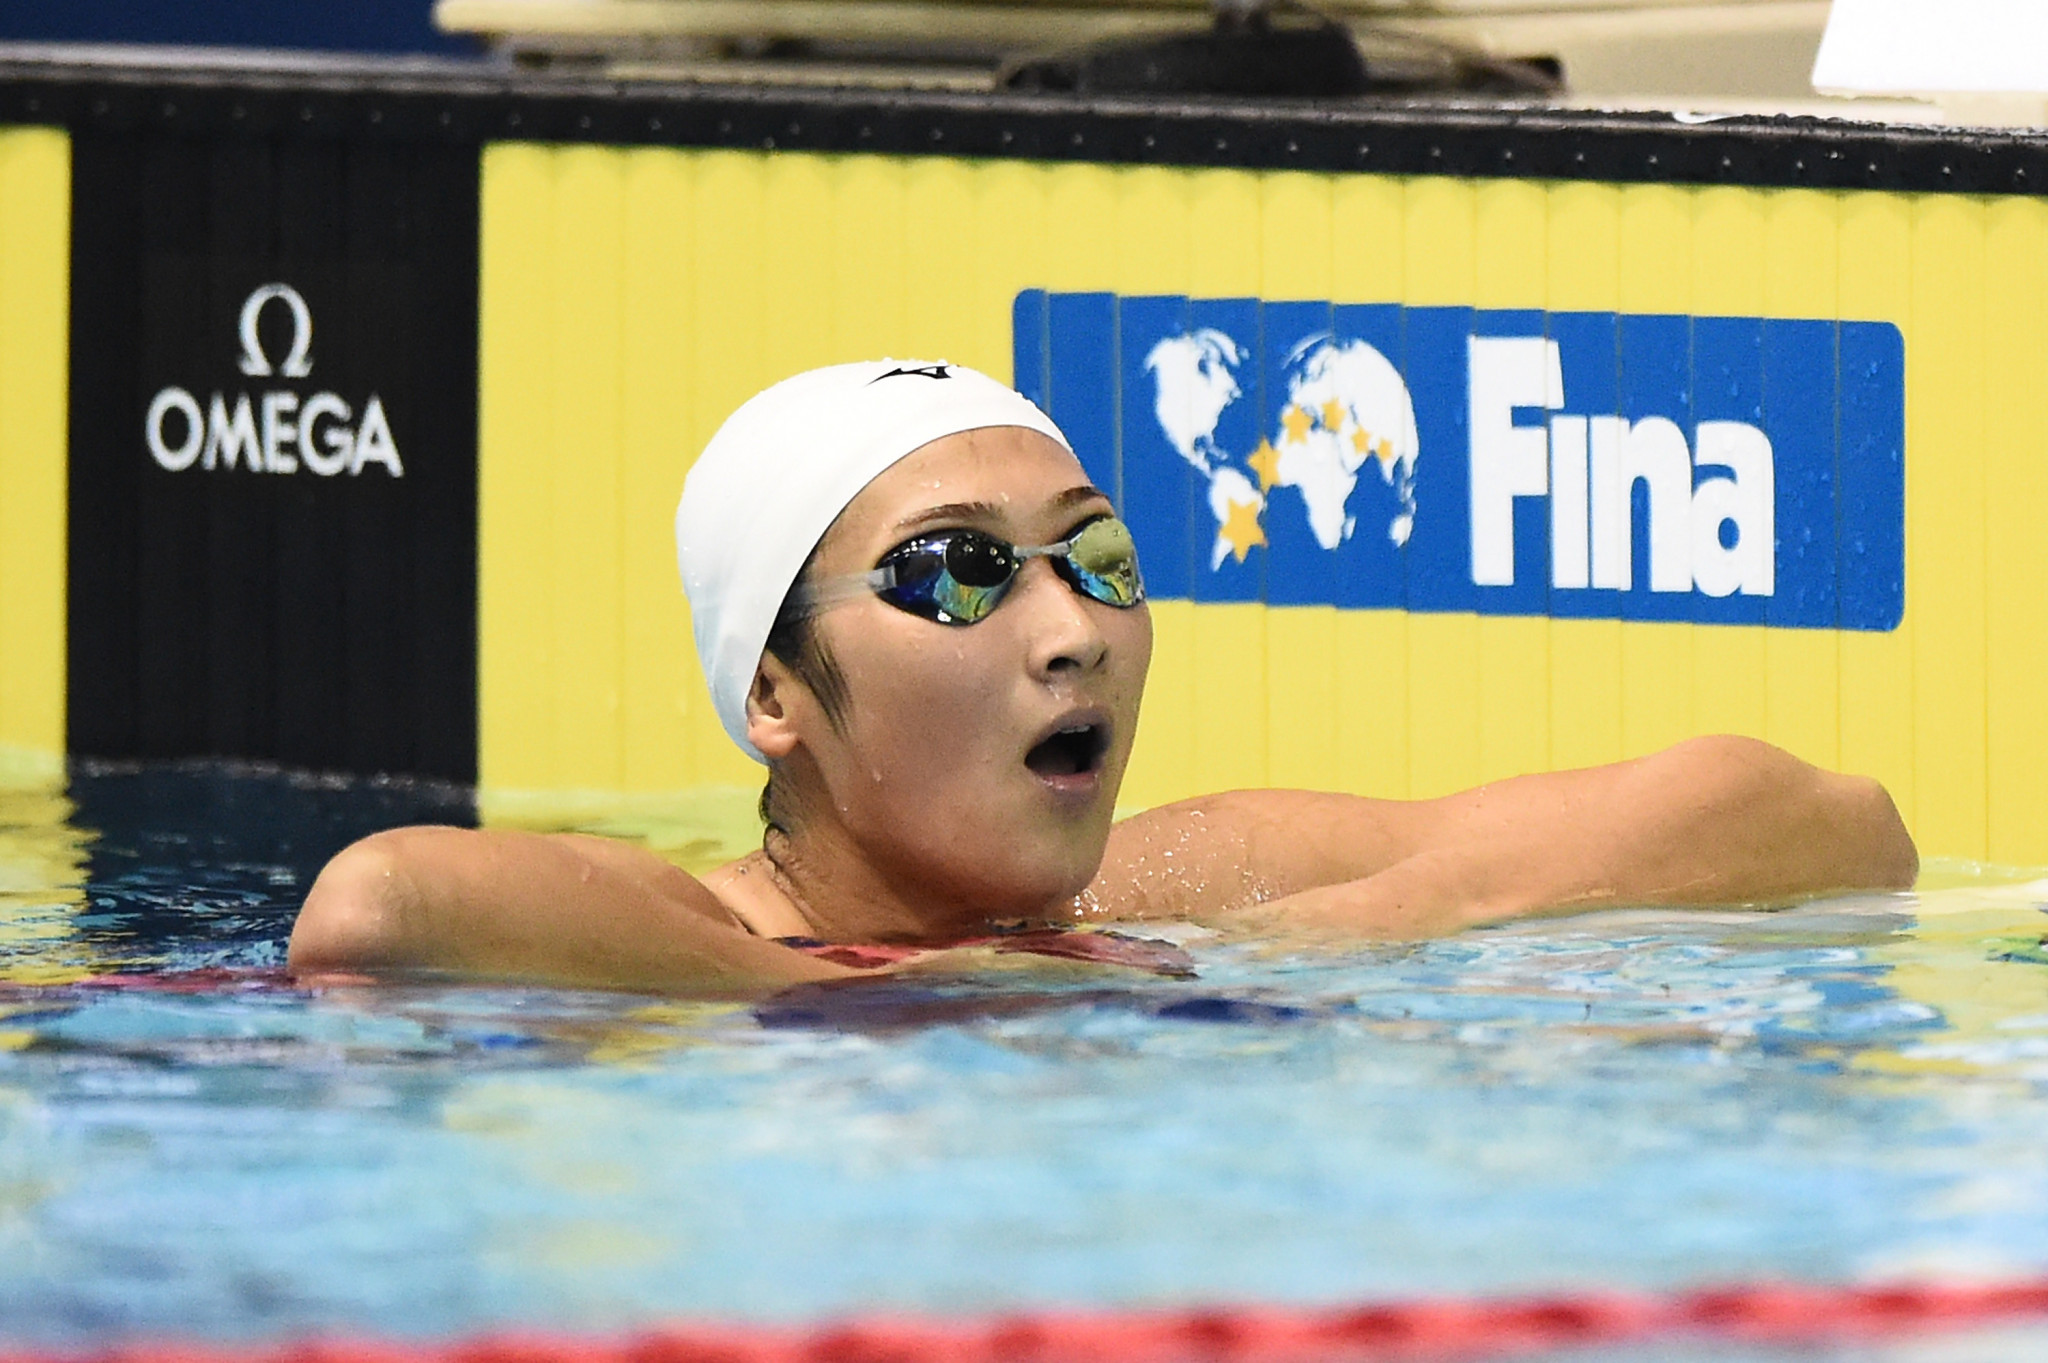 Japanese swimmer Ikee targets Paris 2024 after recovering from leukemia